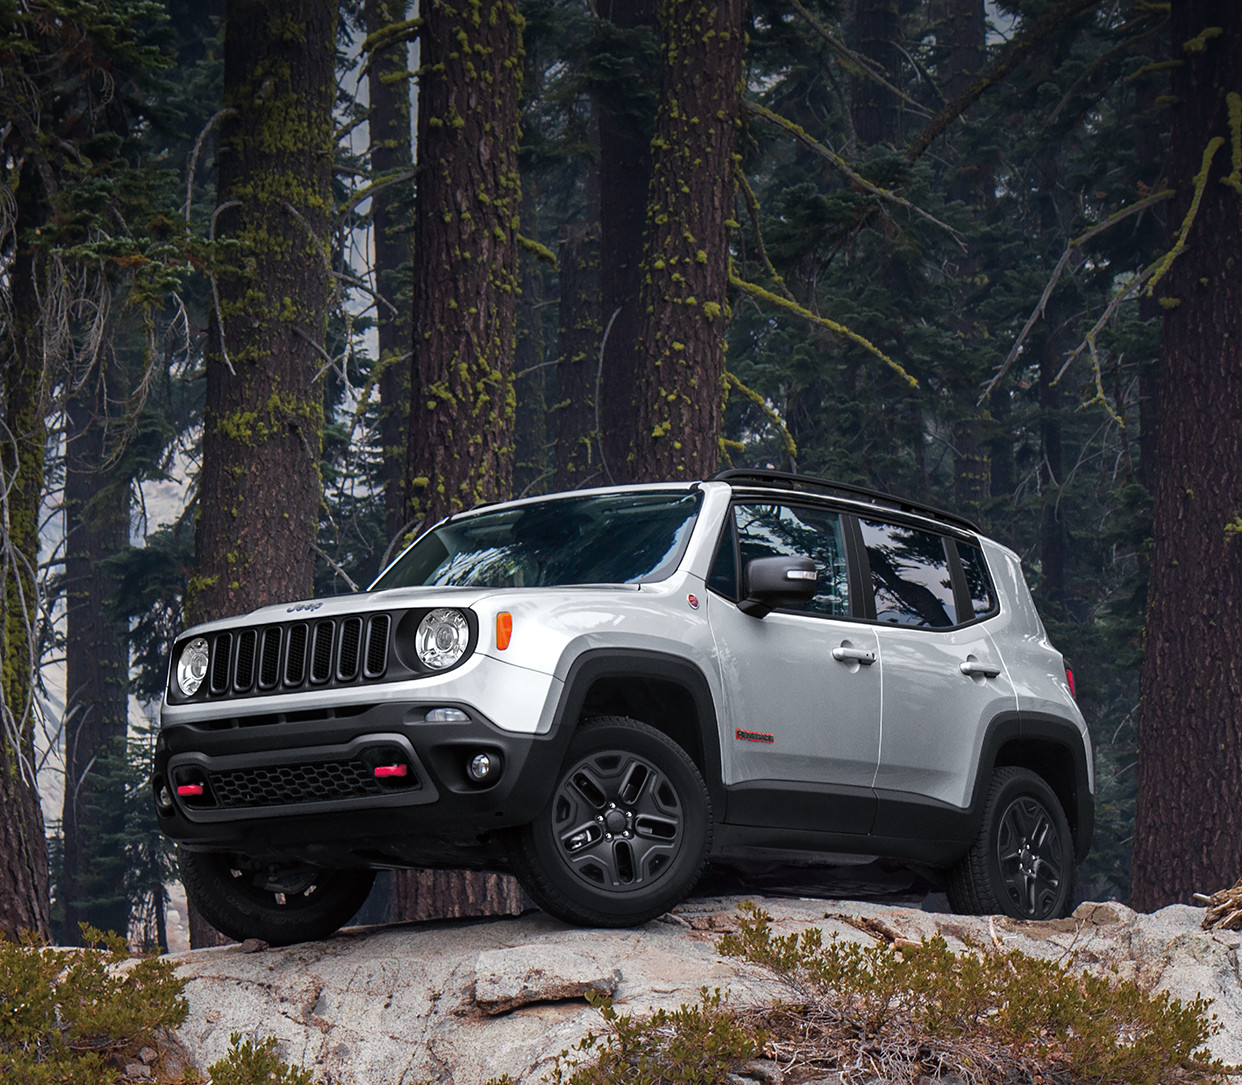 2018 Jeep Renegade: Changes, Design, Features, Price >> 2018 Jeep Renegade Small Suv